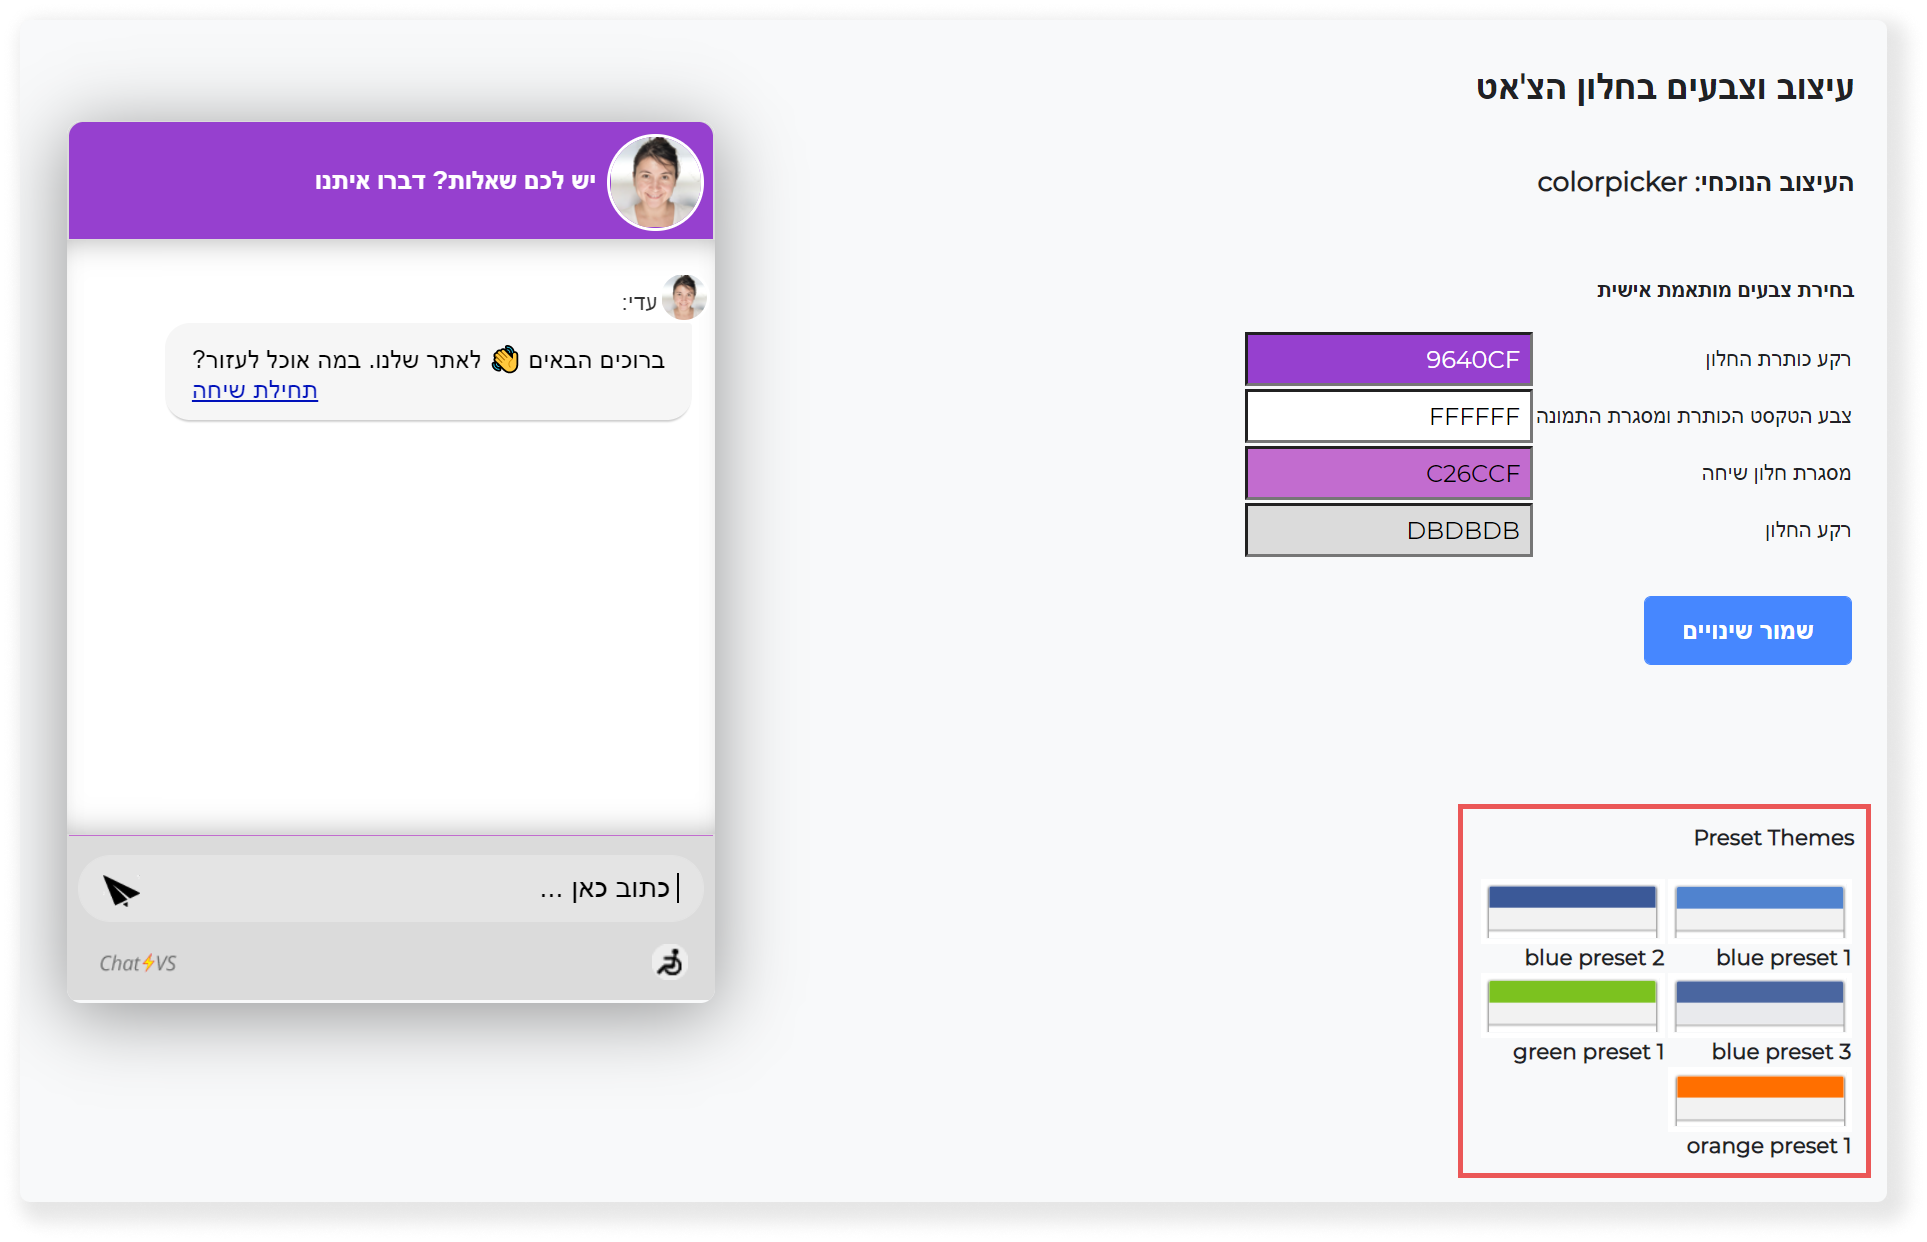 changing chat window colors